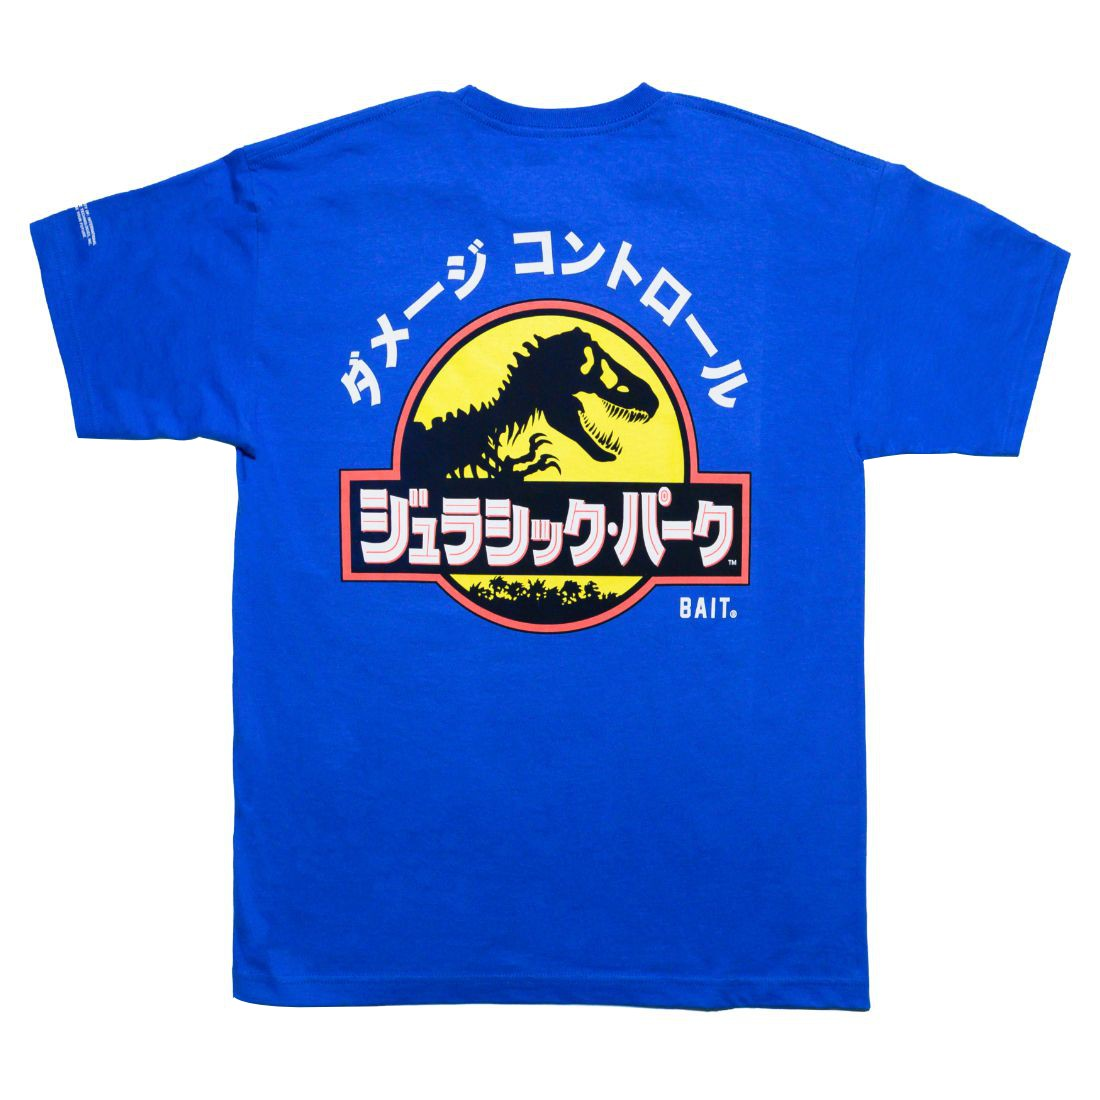 BAIT x Jurassic Park Men Damage Control Tee (blue / royal)